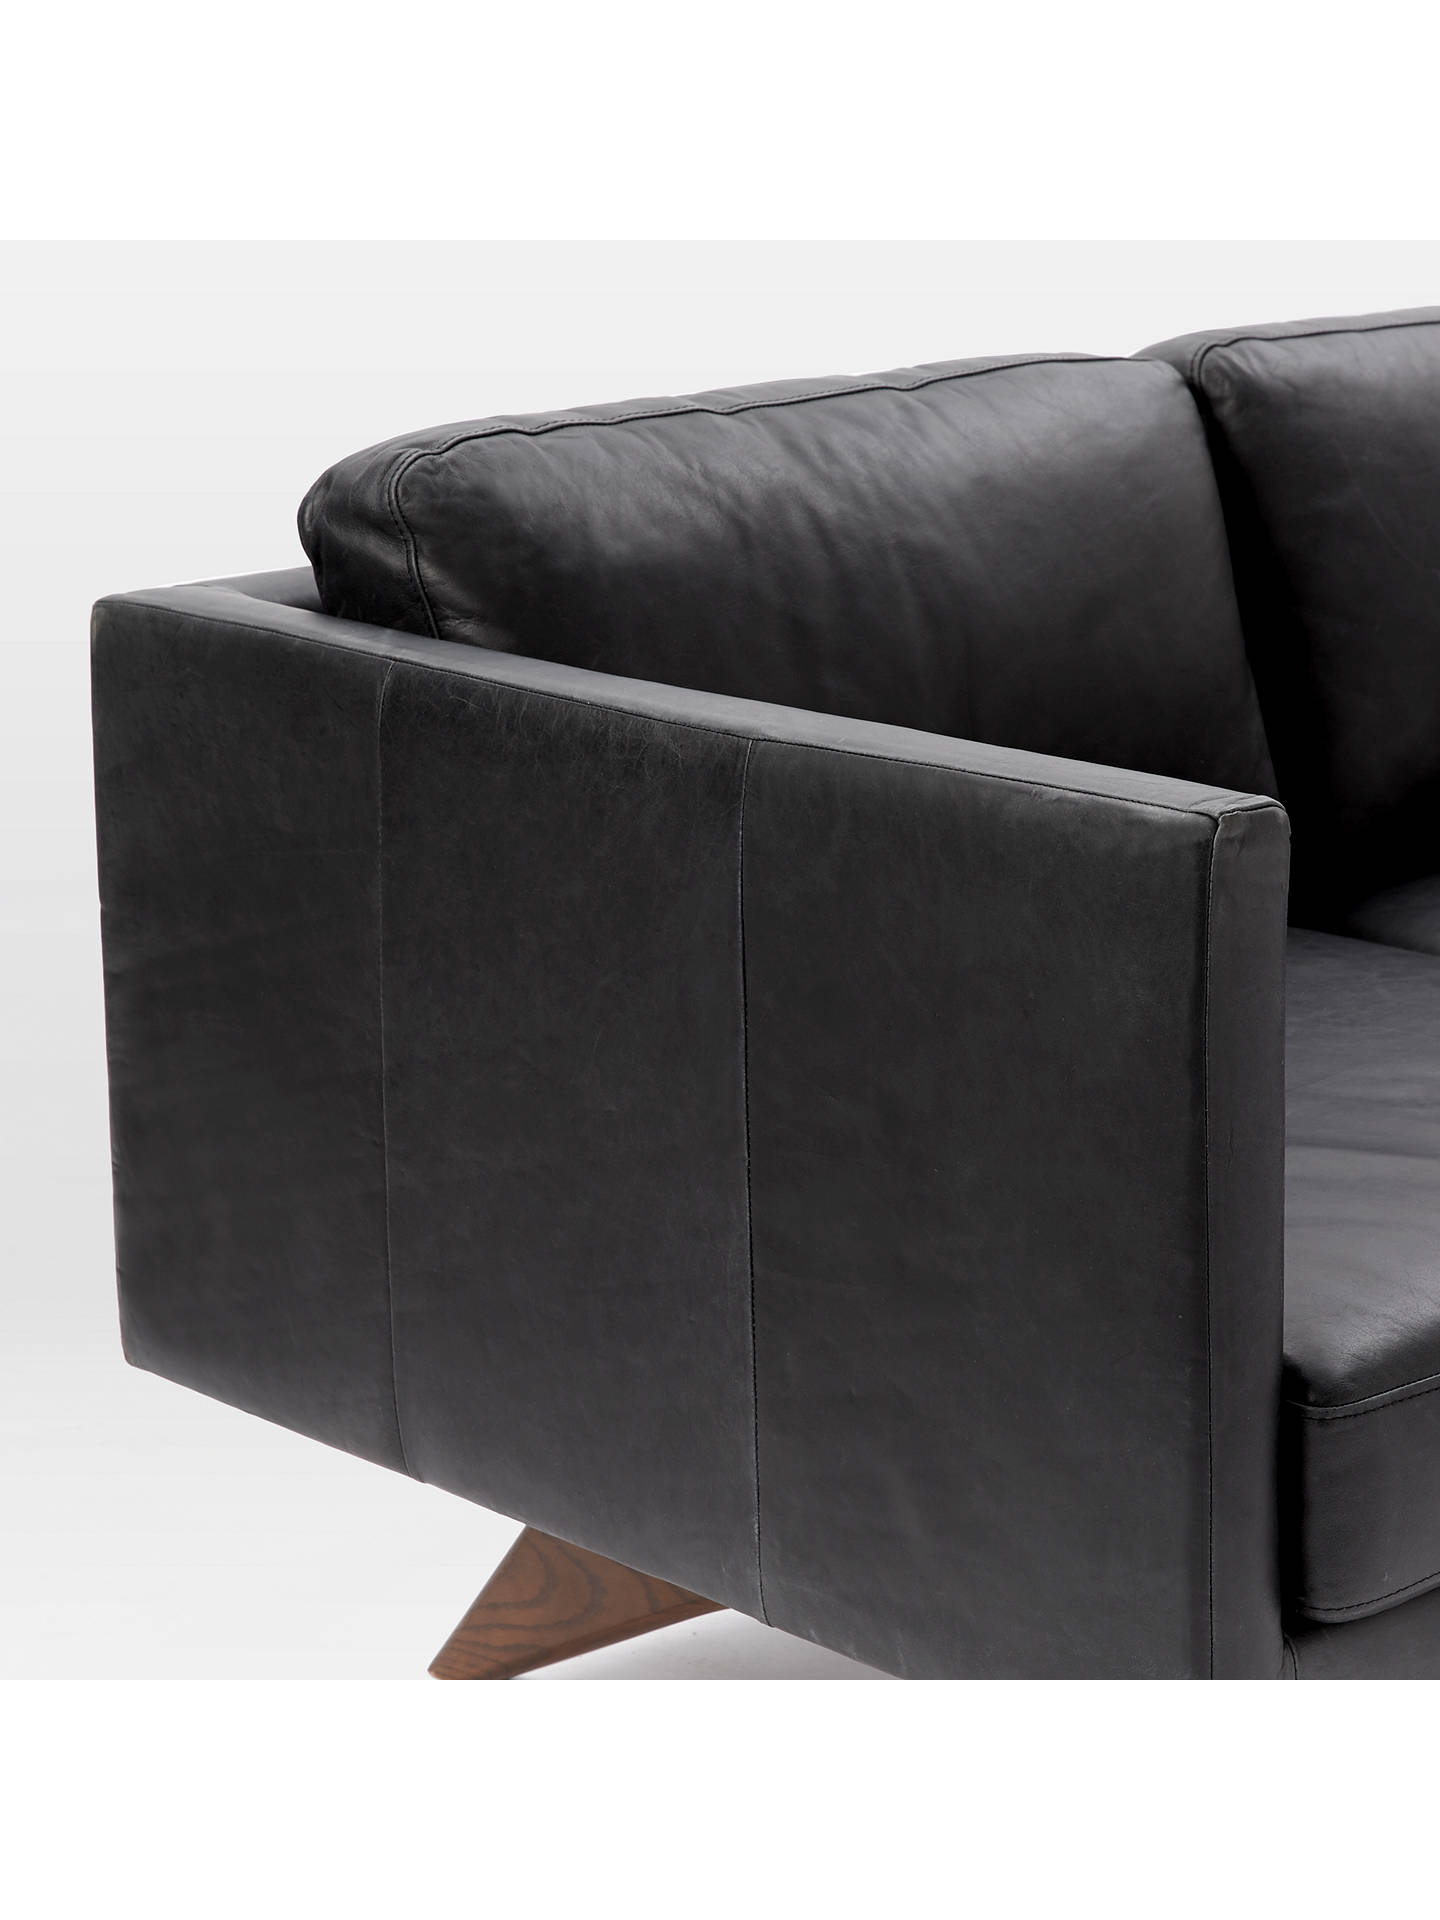 West Elm Brooklyn Leather 3 Seater Sofa Liquorice At John Lewis